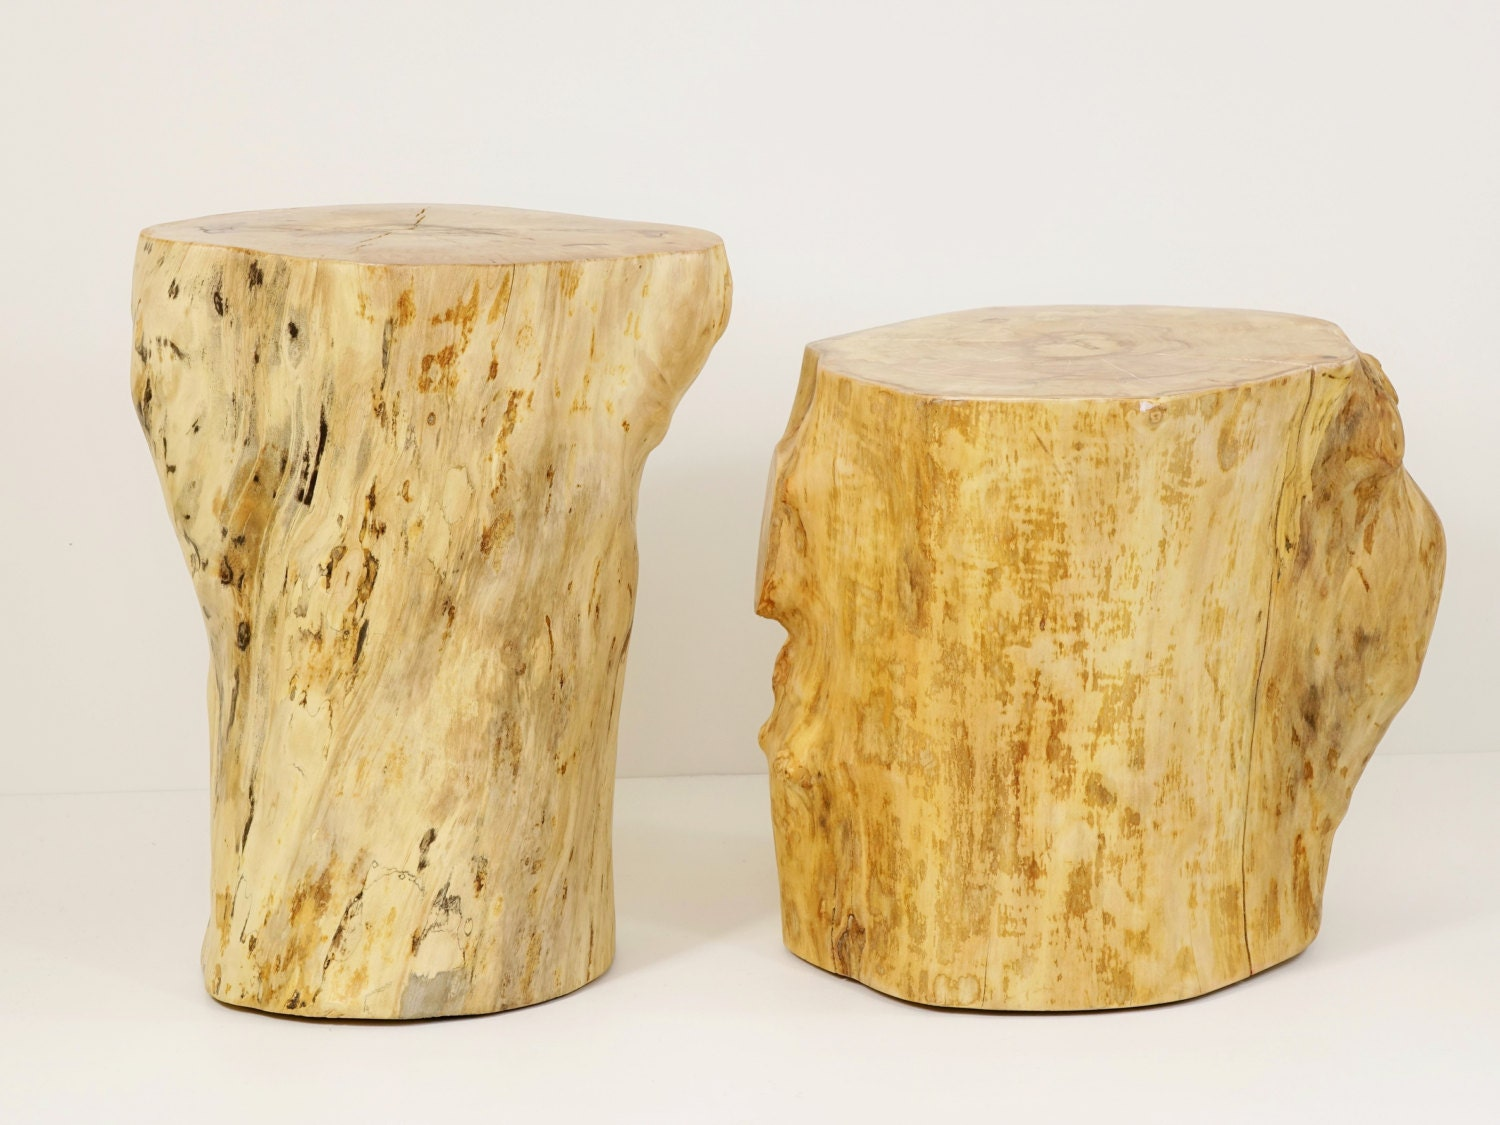 Wood Stump Stool Clone Tree Trunk bedside stump table natural colour tree trunk baumstamm tisch hocker holz & Wood Stump Stool Clone Tree Trunk bedside stump table natural ... islam-shia.org